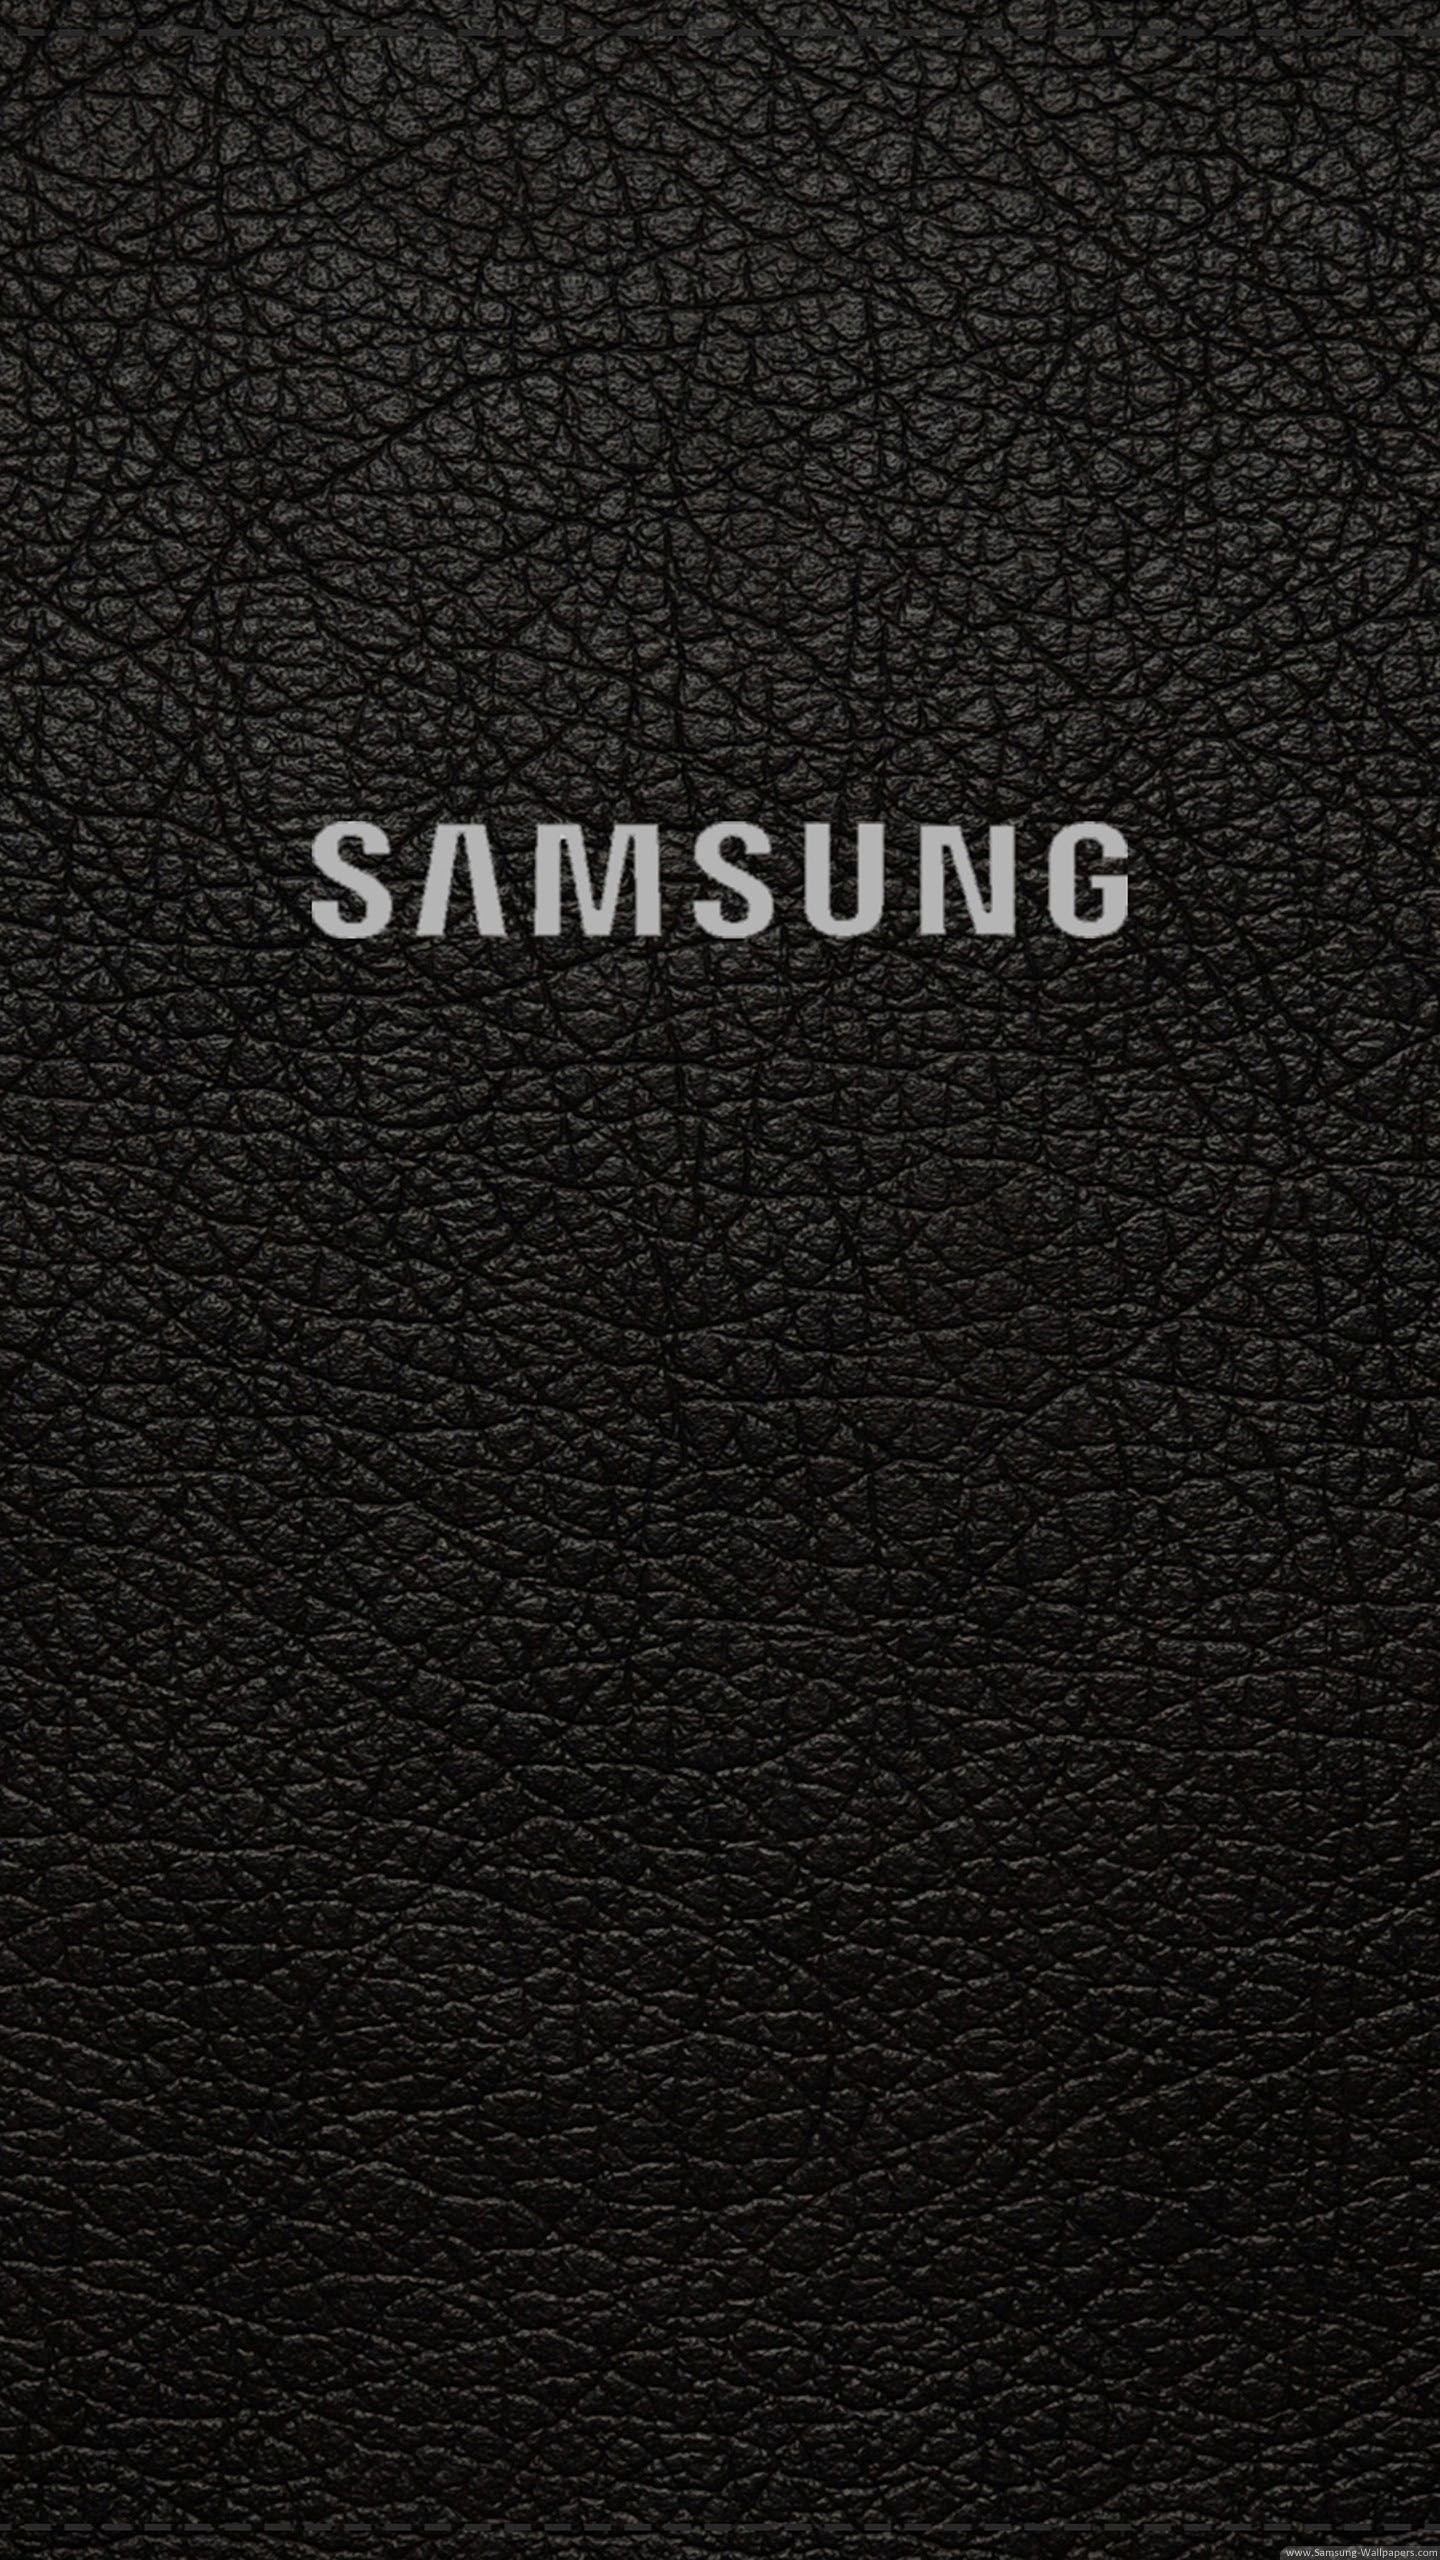 Res: 1440x2560, HD Samsung Wallpapers For Mobile Free Download